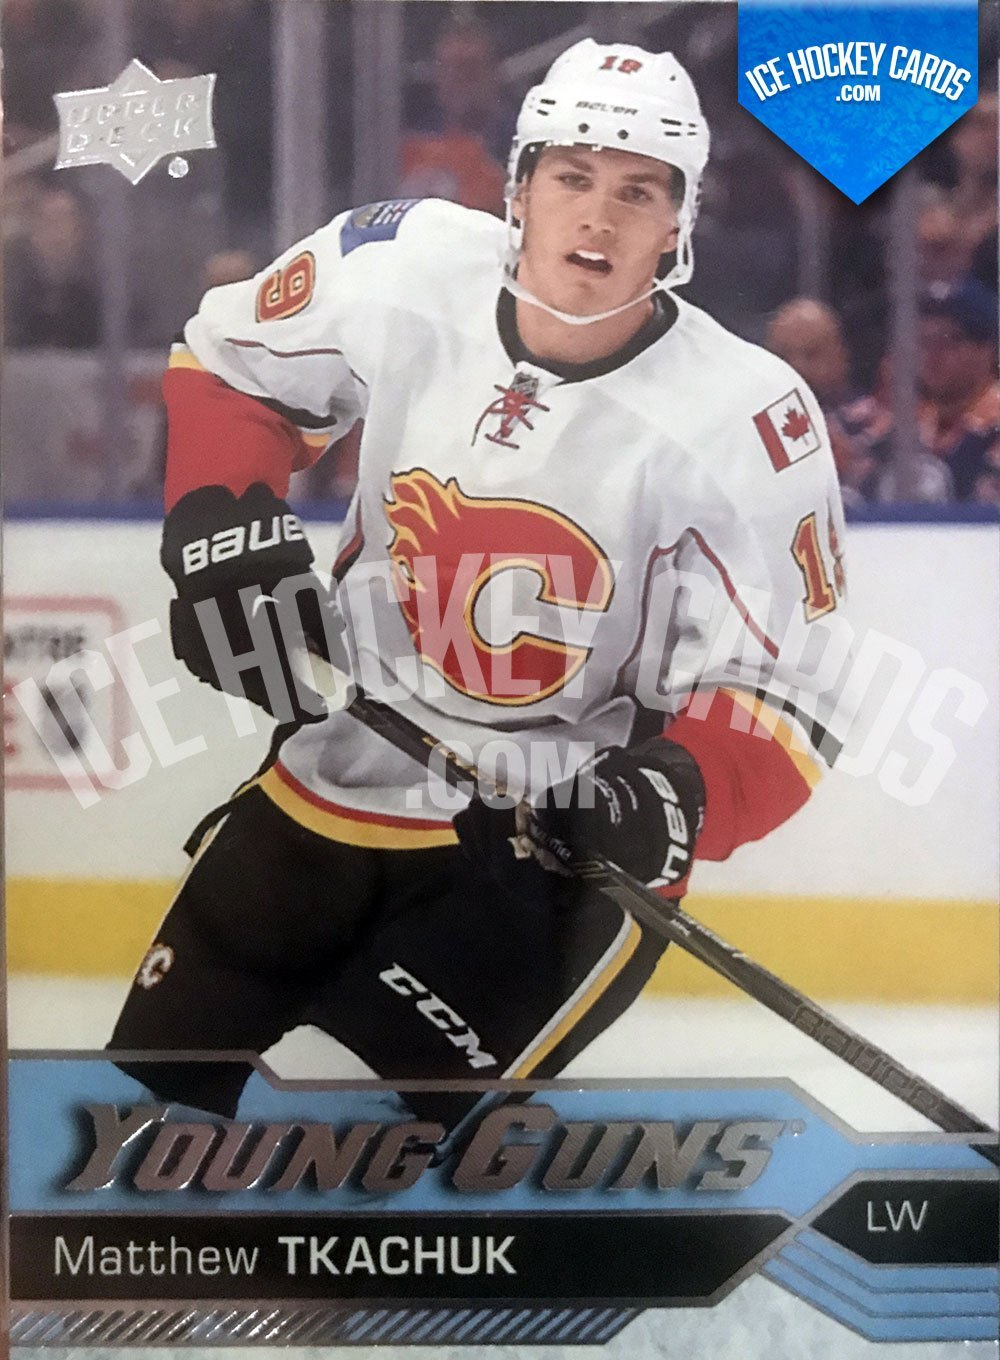 Upper Deck -16-17 - Matthew Tkachuk Young Guns Rookie Card